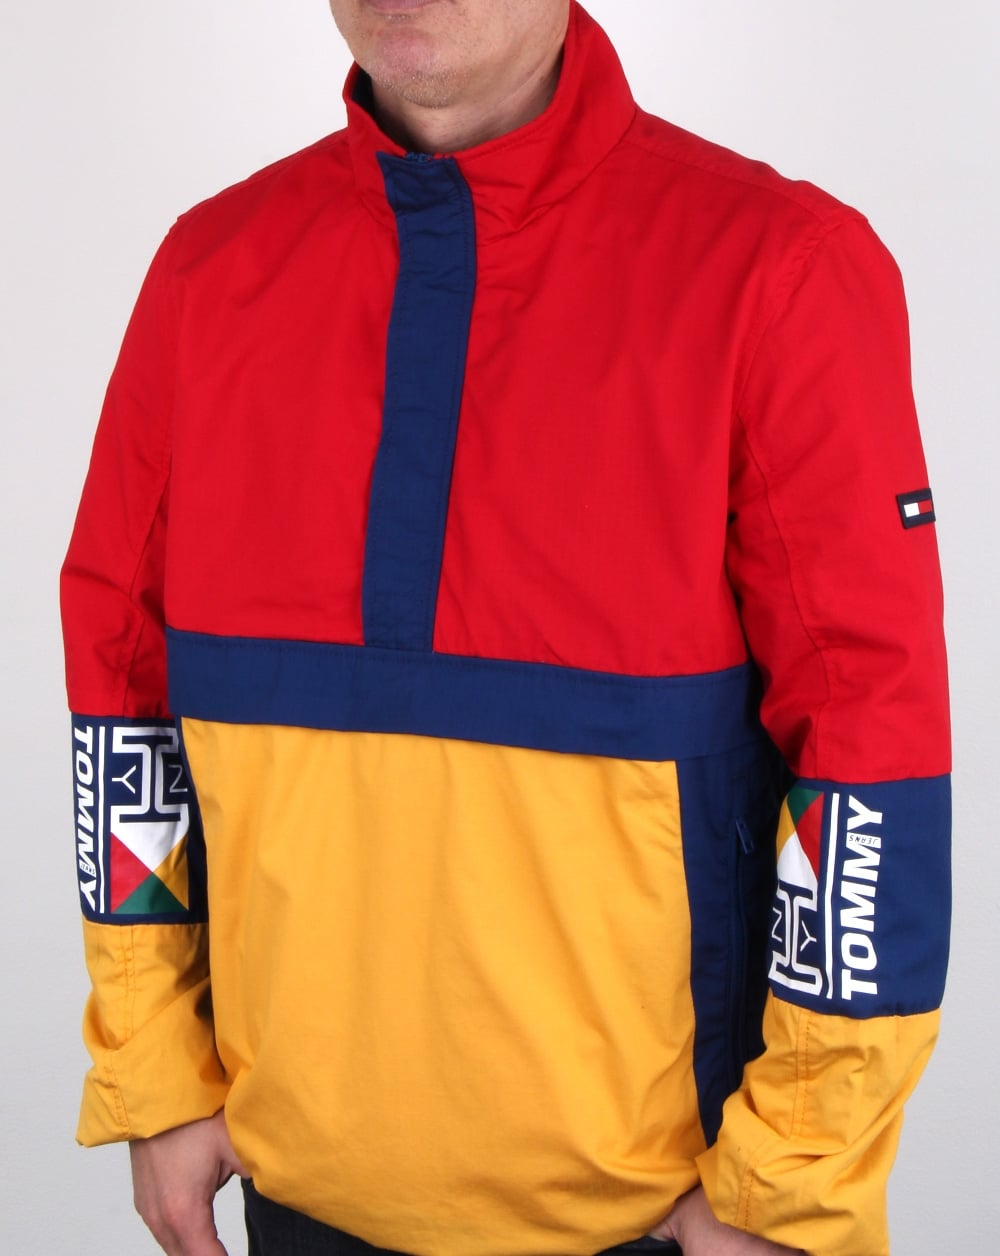 76424fe54 Tommy Hilfiger Jeans Tommy Hilfiger Retro Block Pullover Jacket  Red/yellow/navy